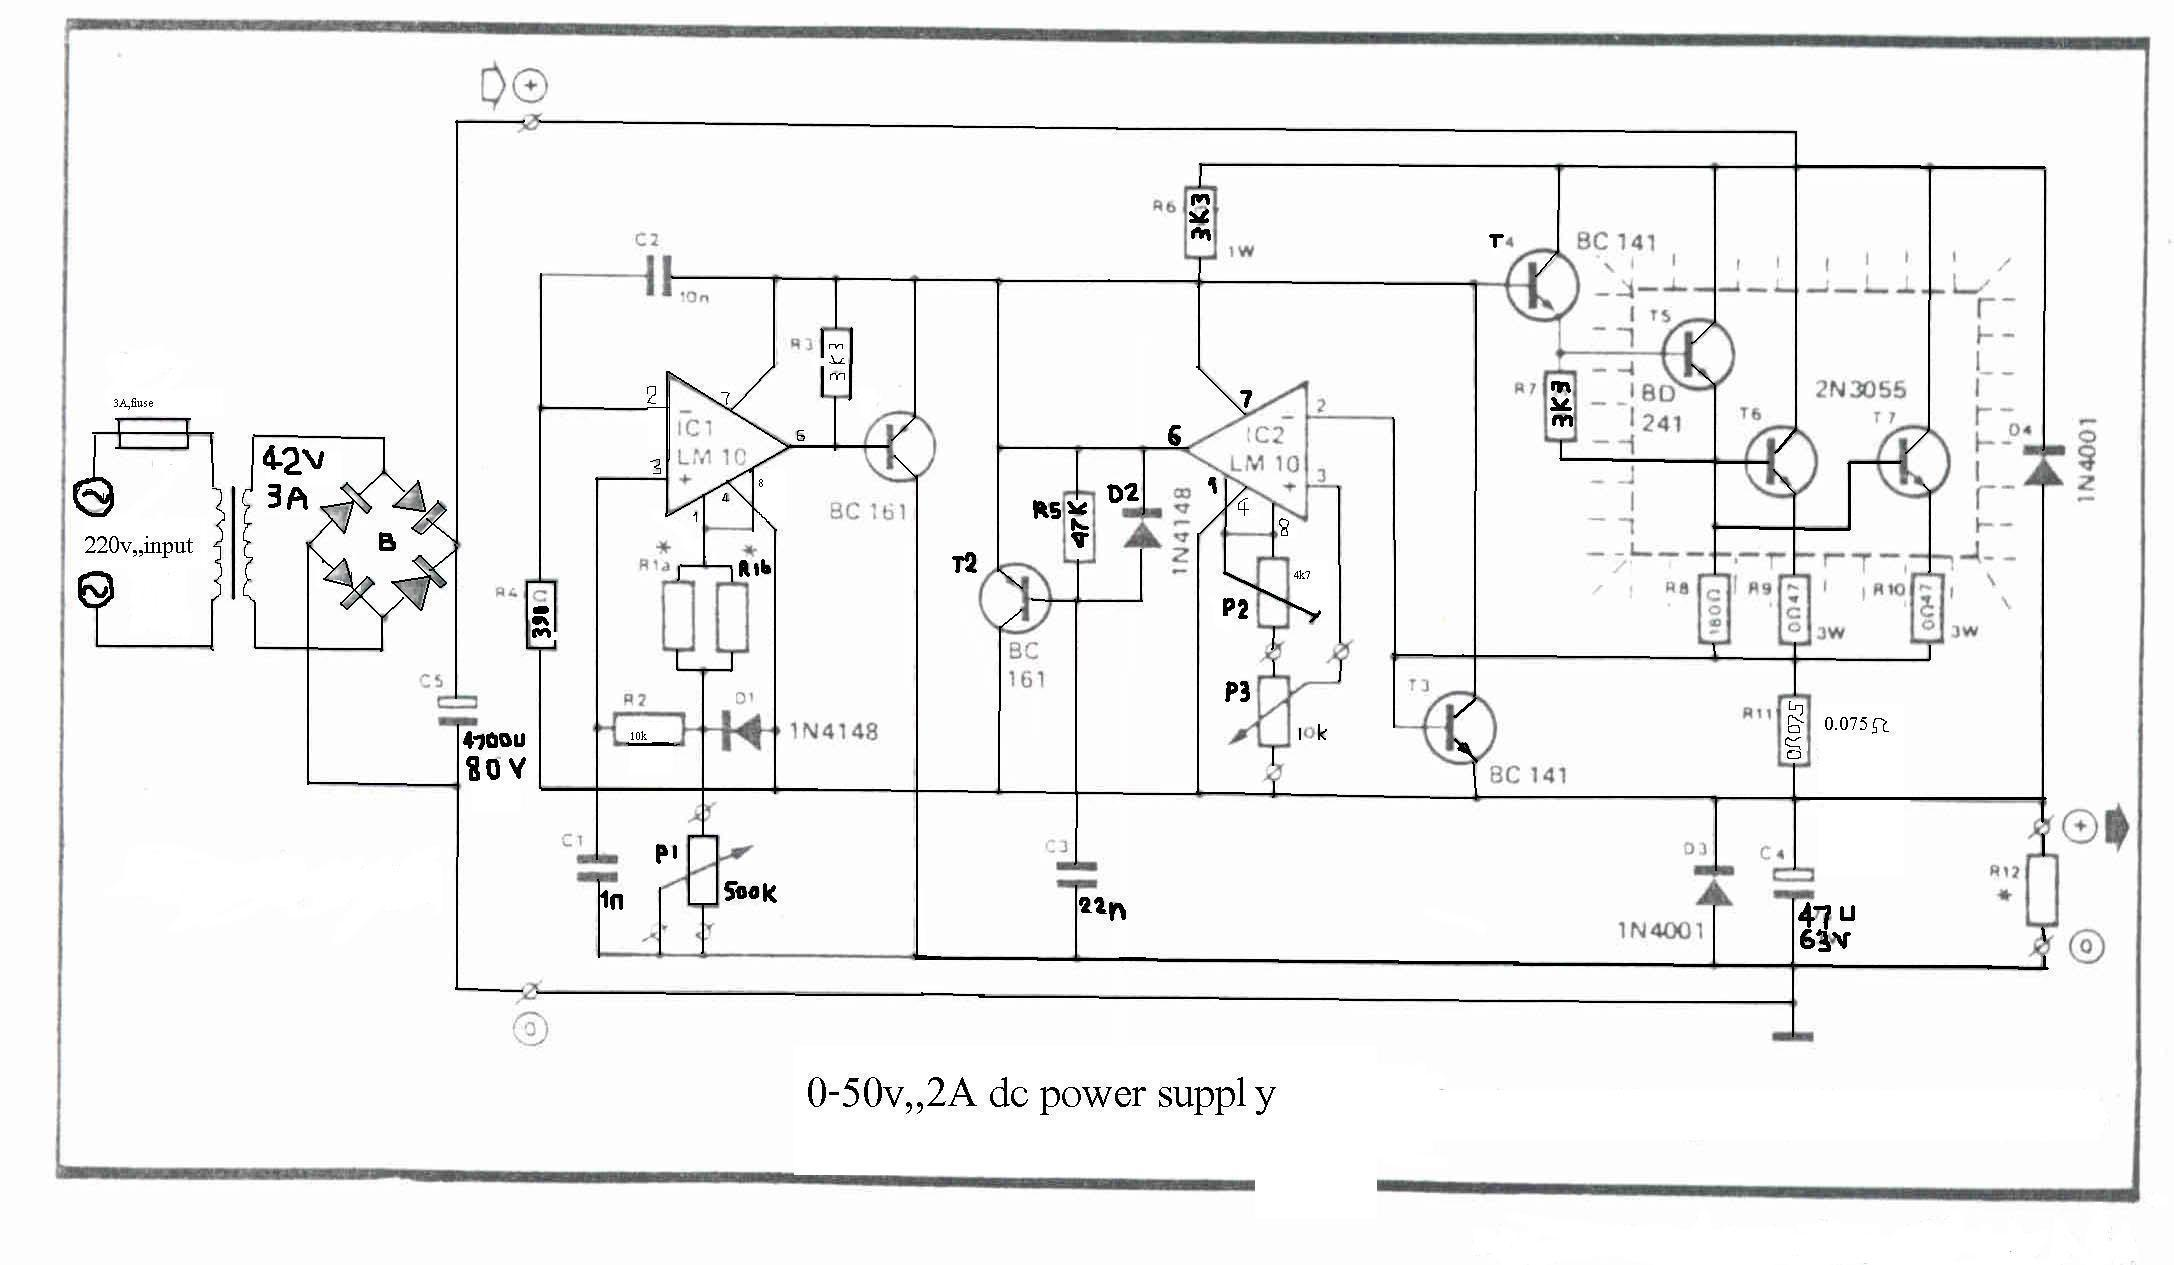 Circuit Diagram 15v Dc Power Supply Wiring Library Voltage 1 Powersupplycircuit Seekiccom 0 50v 2a Bench